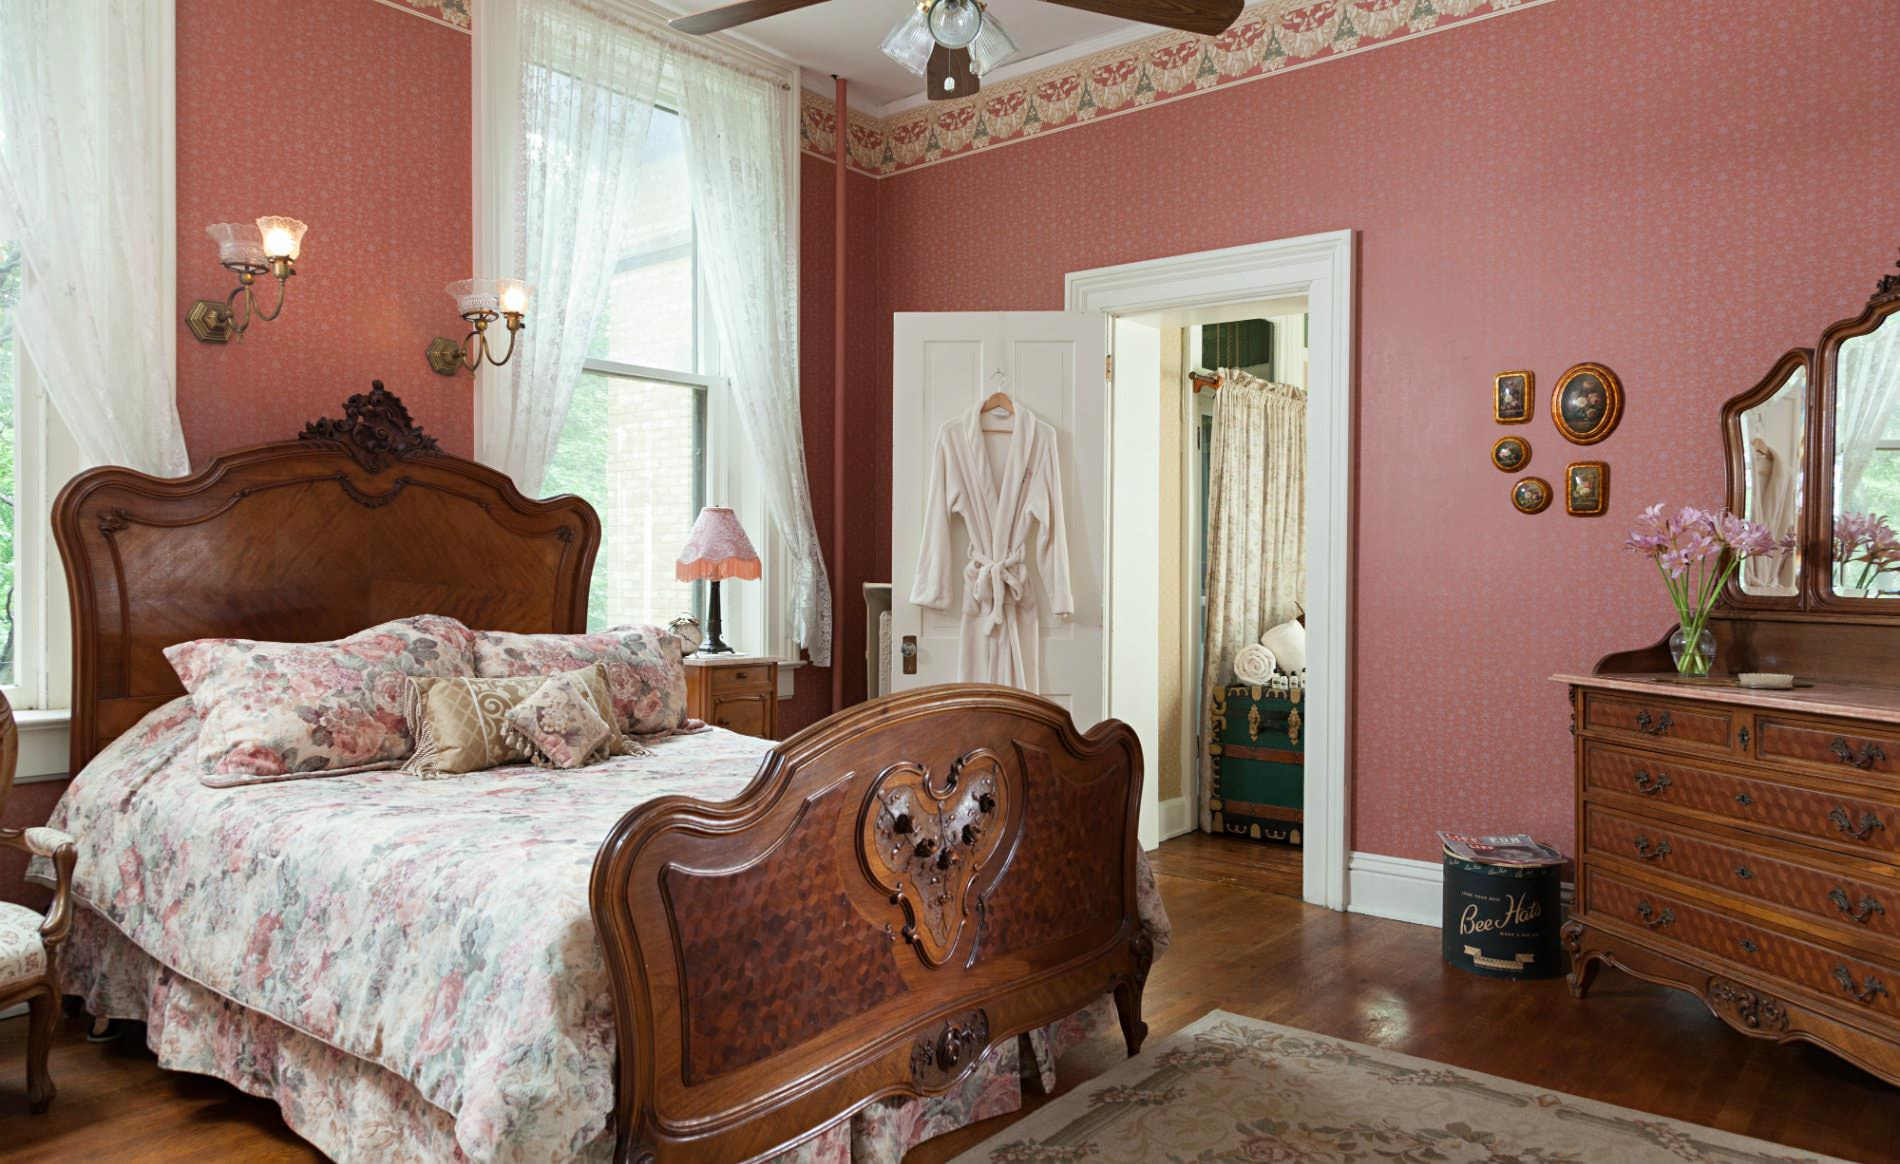 Rose papered walls, white lace curtains, white trim and doors, wood floors and elegant carved bed and dresser with mirror